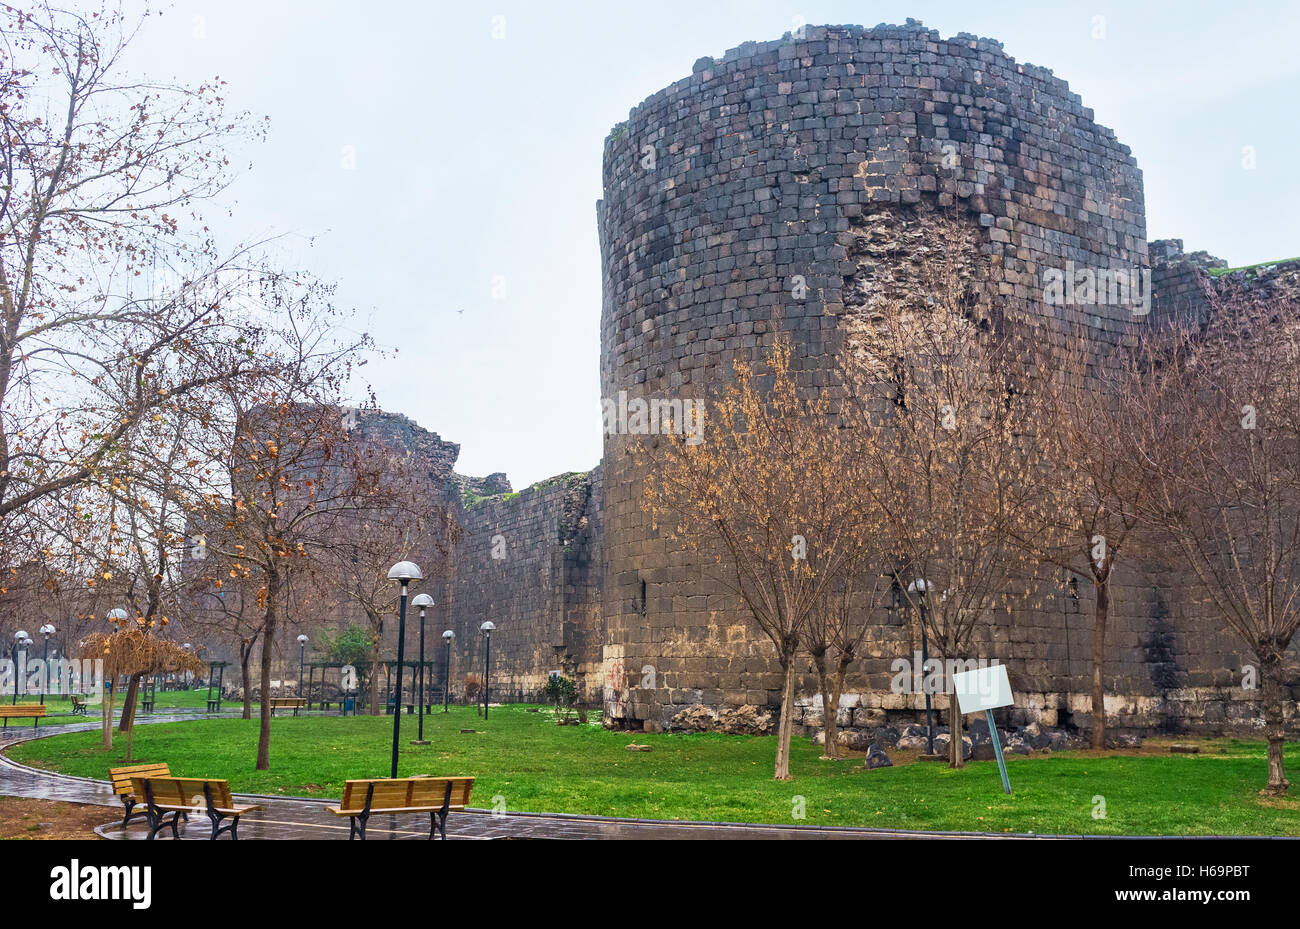 The city garden stretches along the old town wall with its numerous black basalt towers, Diyarbakir, Turkey. - Stock Image